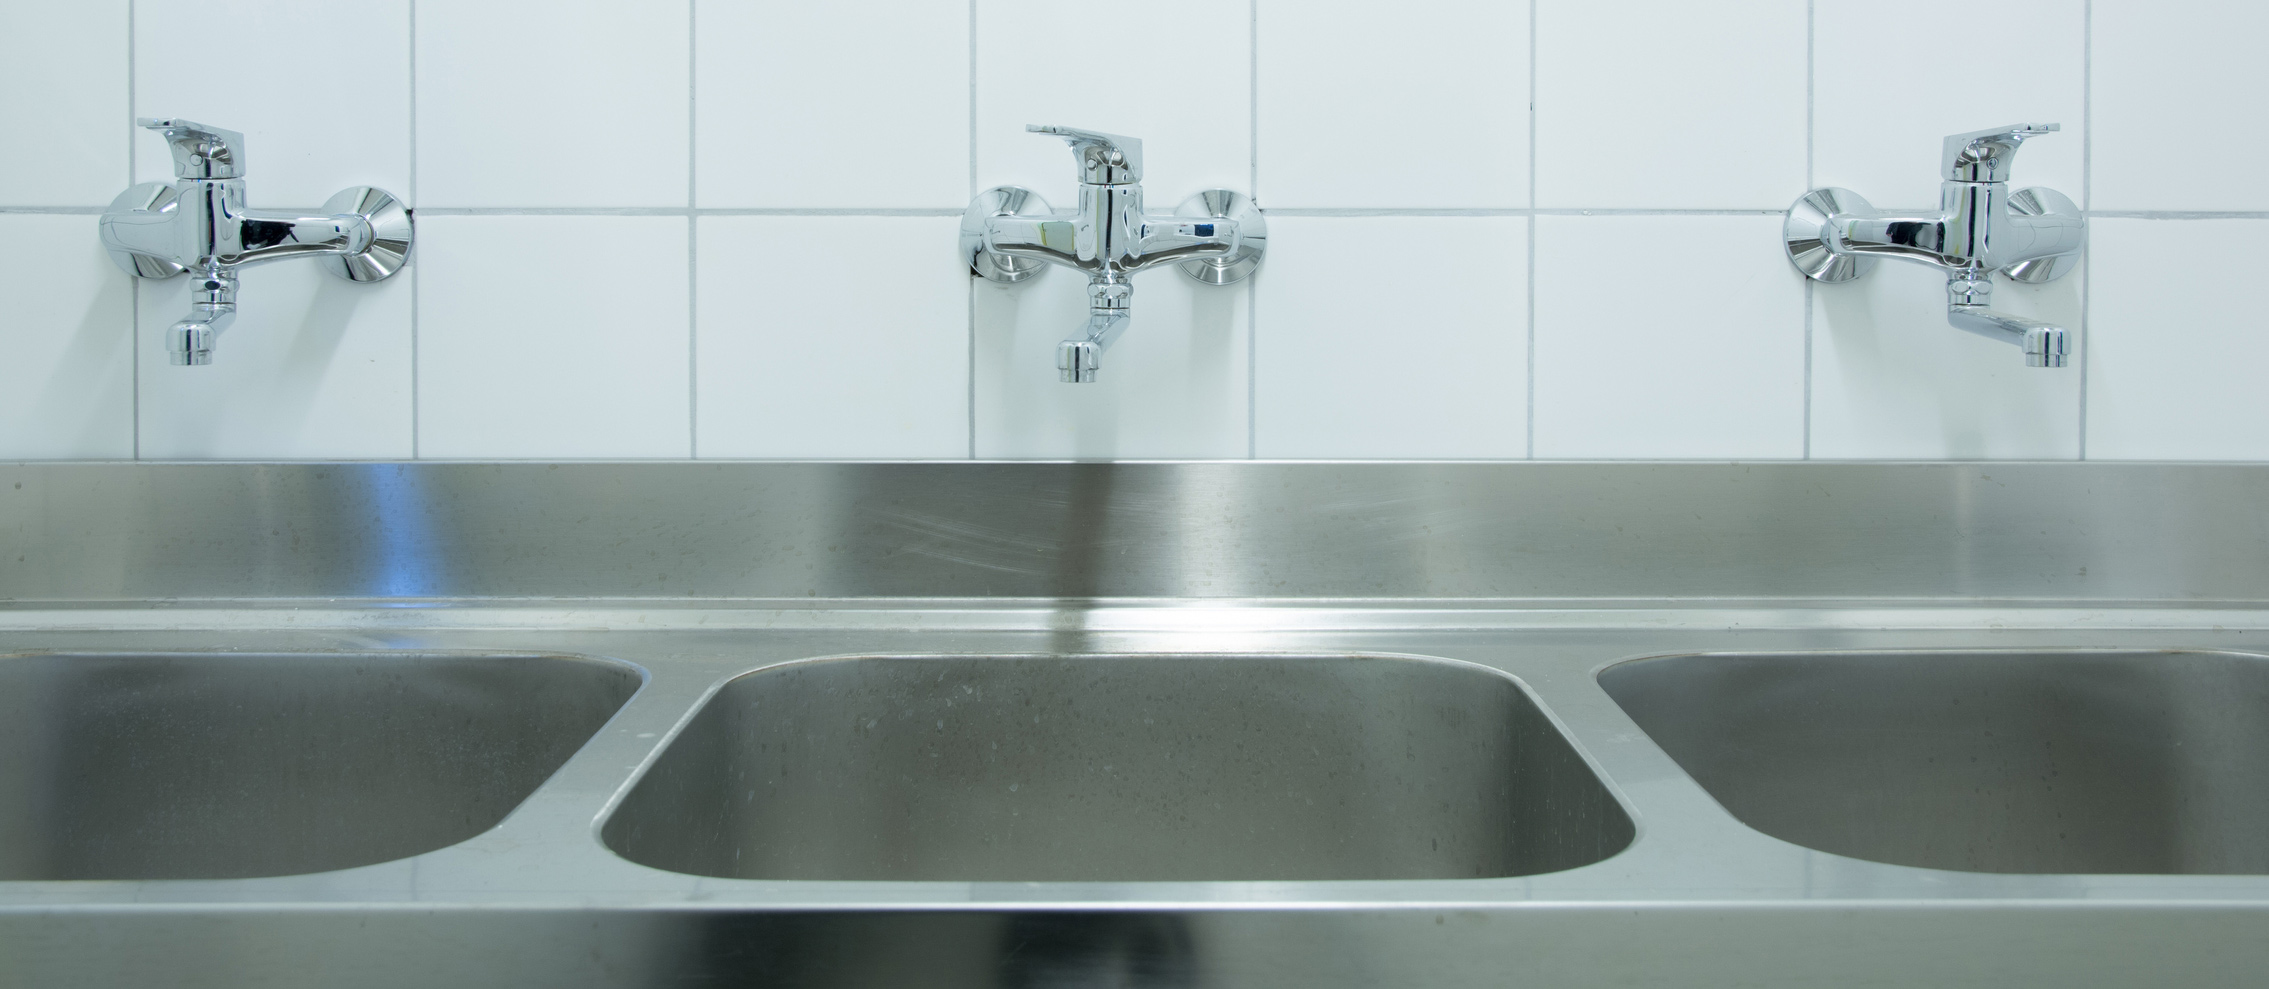 Commercial kitchen sinks.